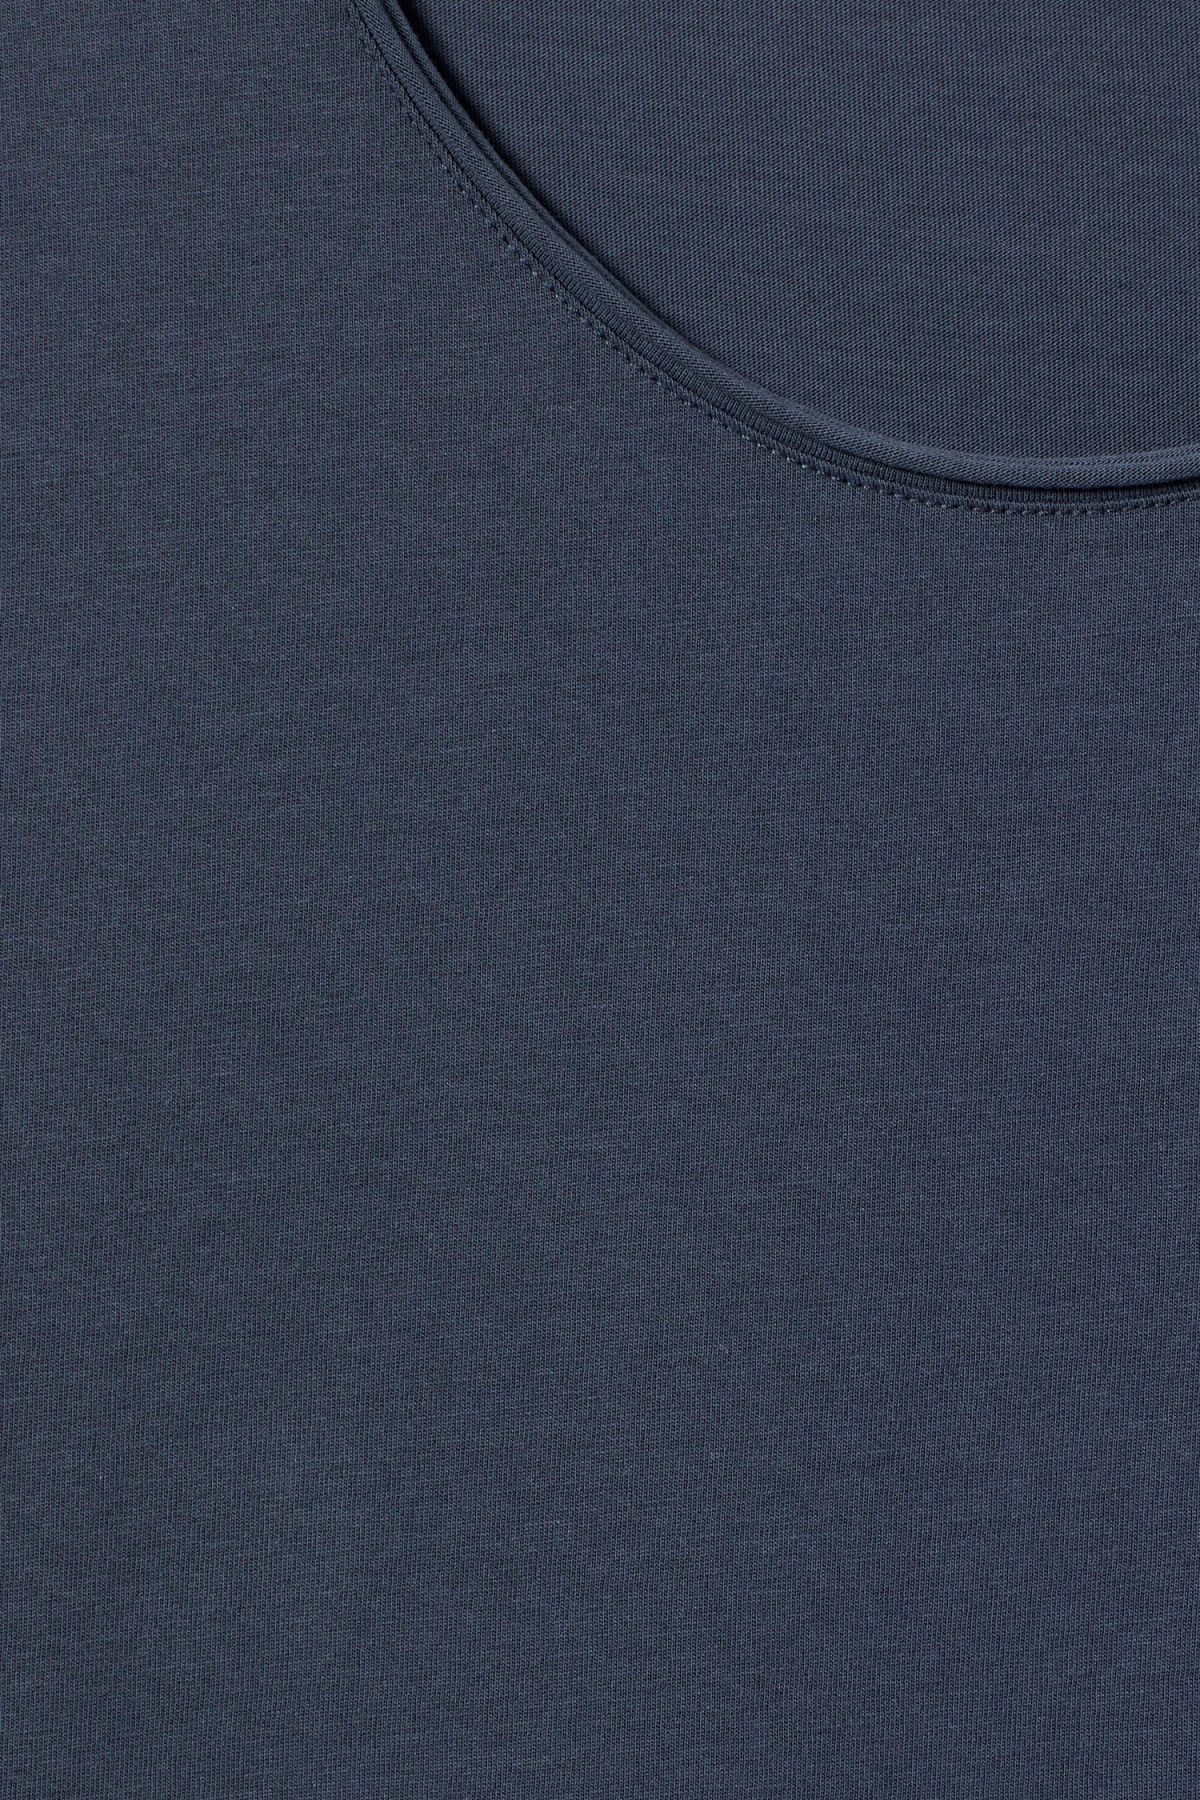 Detailed image of Weekday dark t-shirt in blue